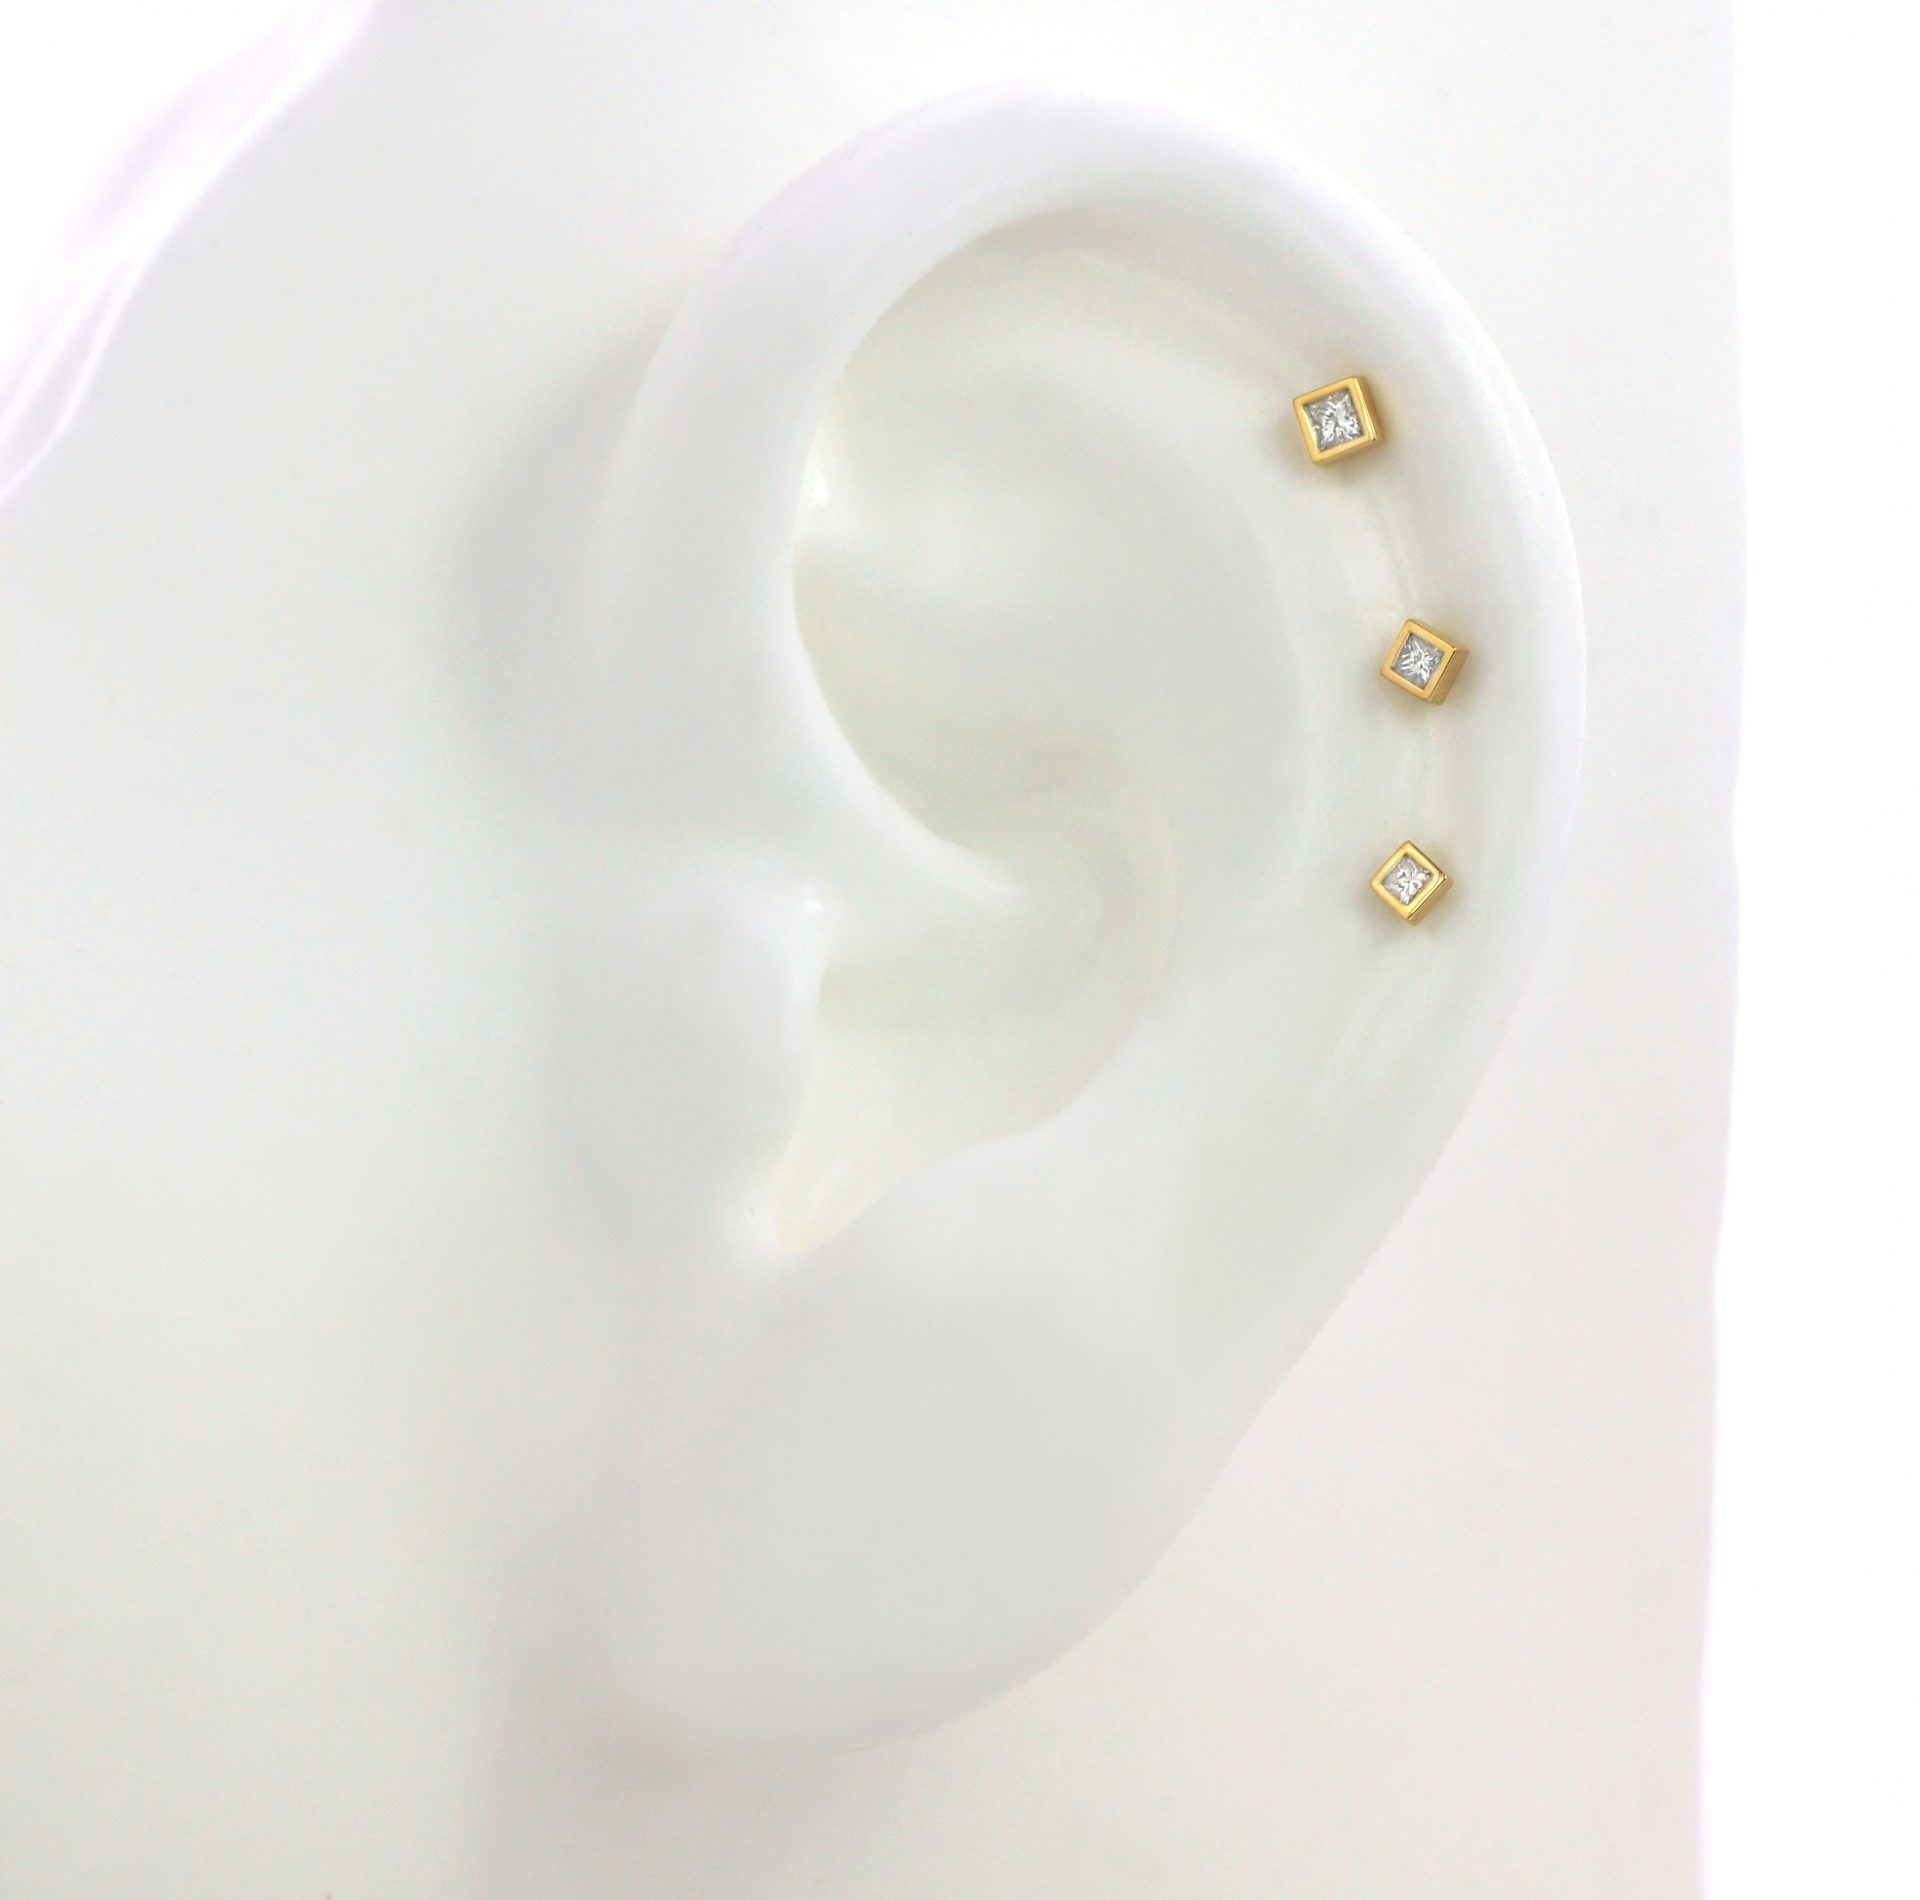 square-shaped-helix-cartilage-earring-luxury-piercing-lena-cohen-british-designer